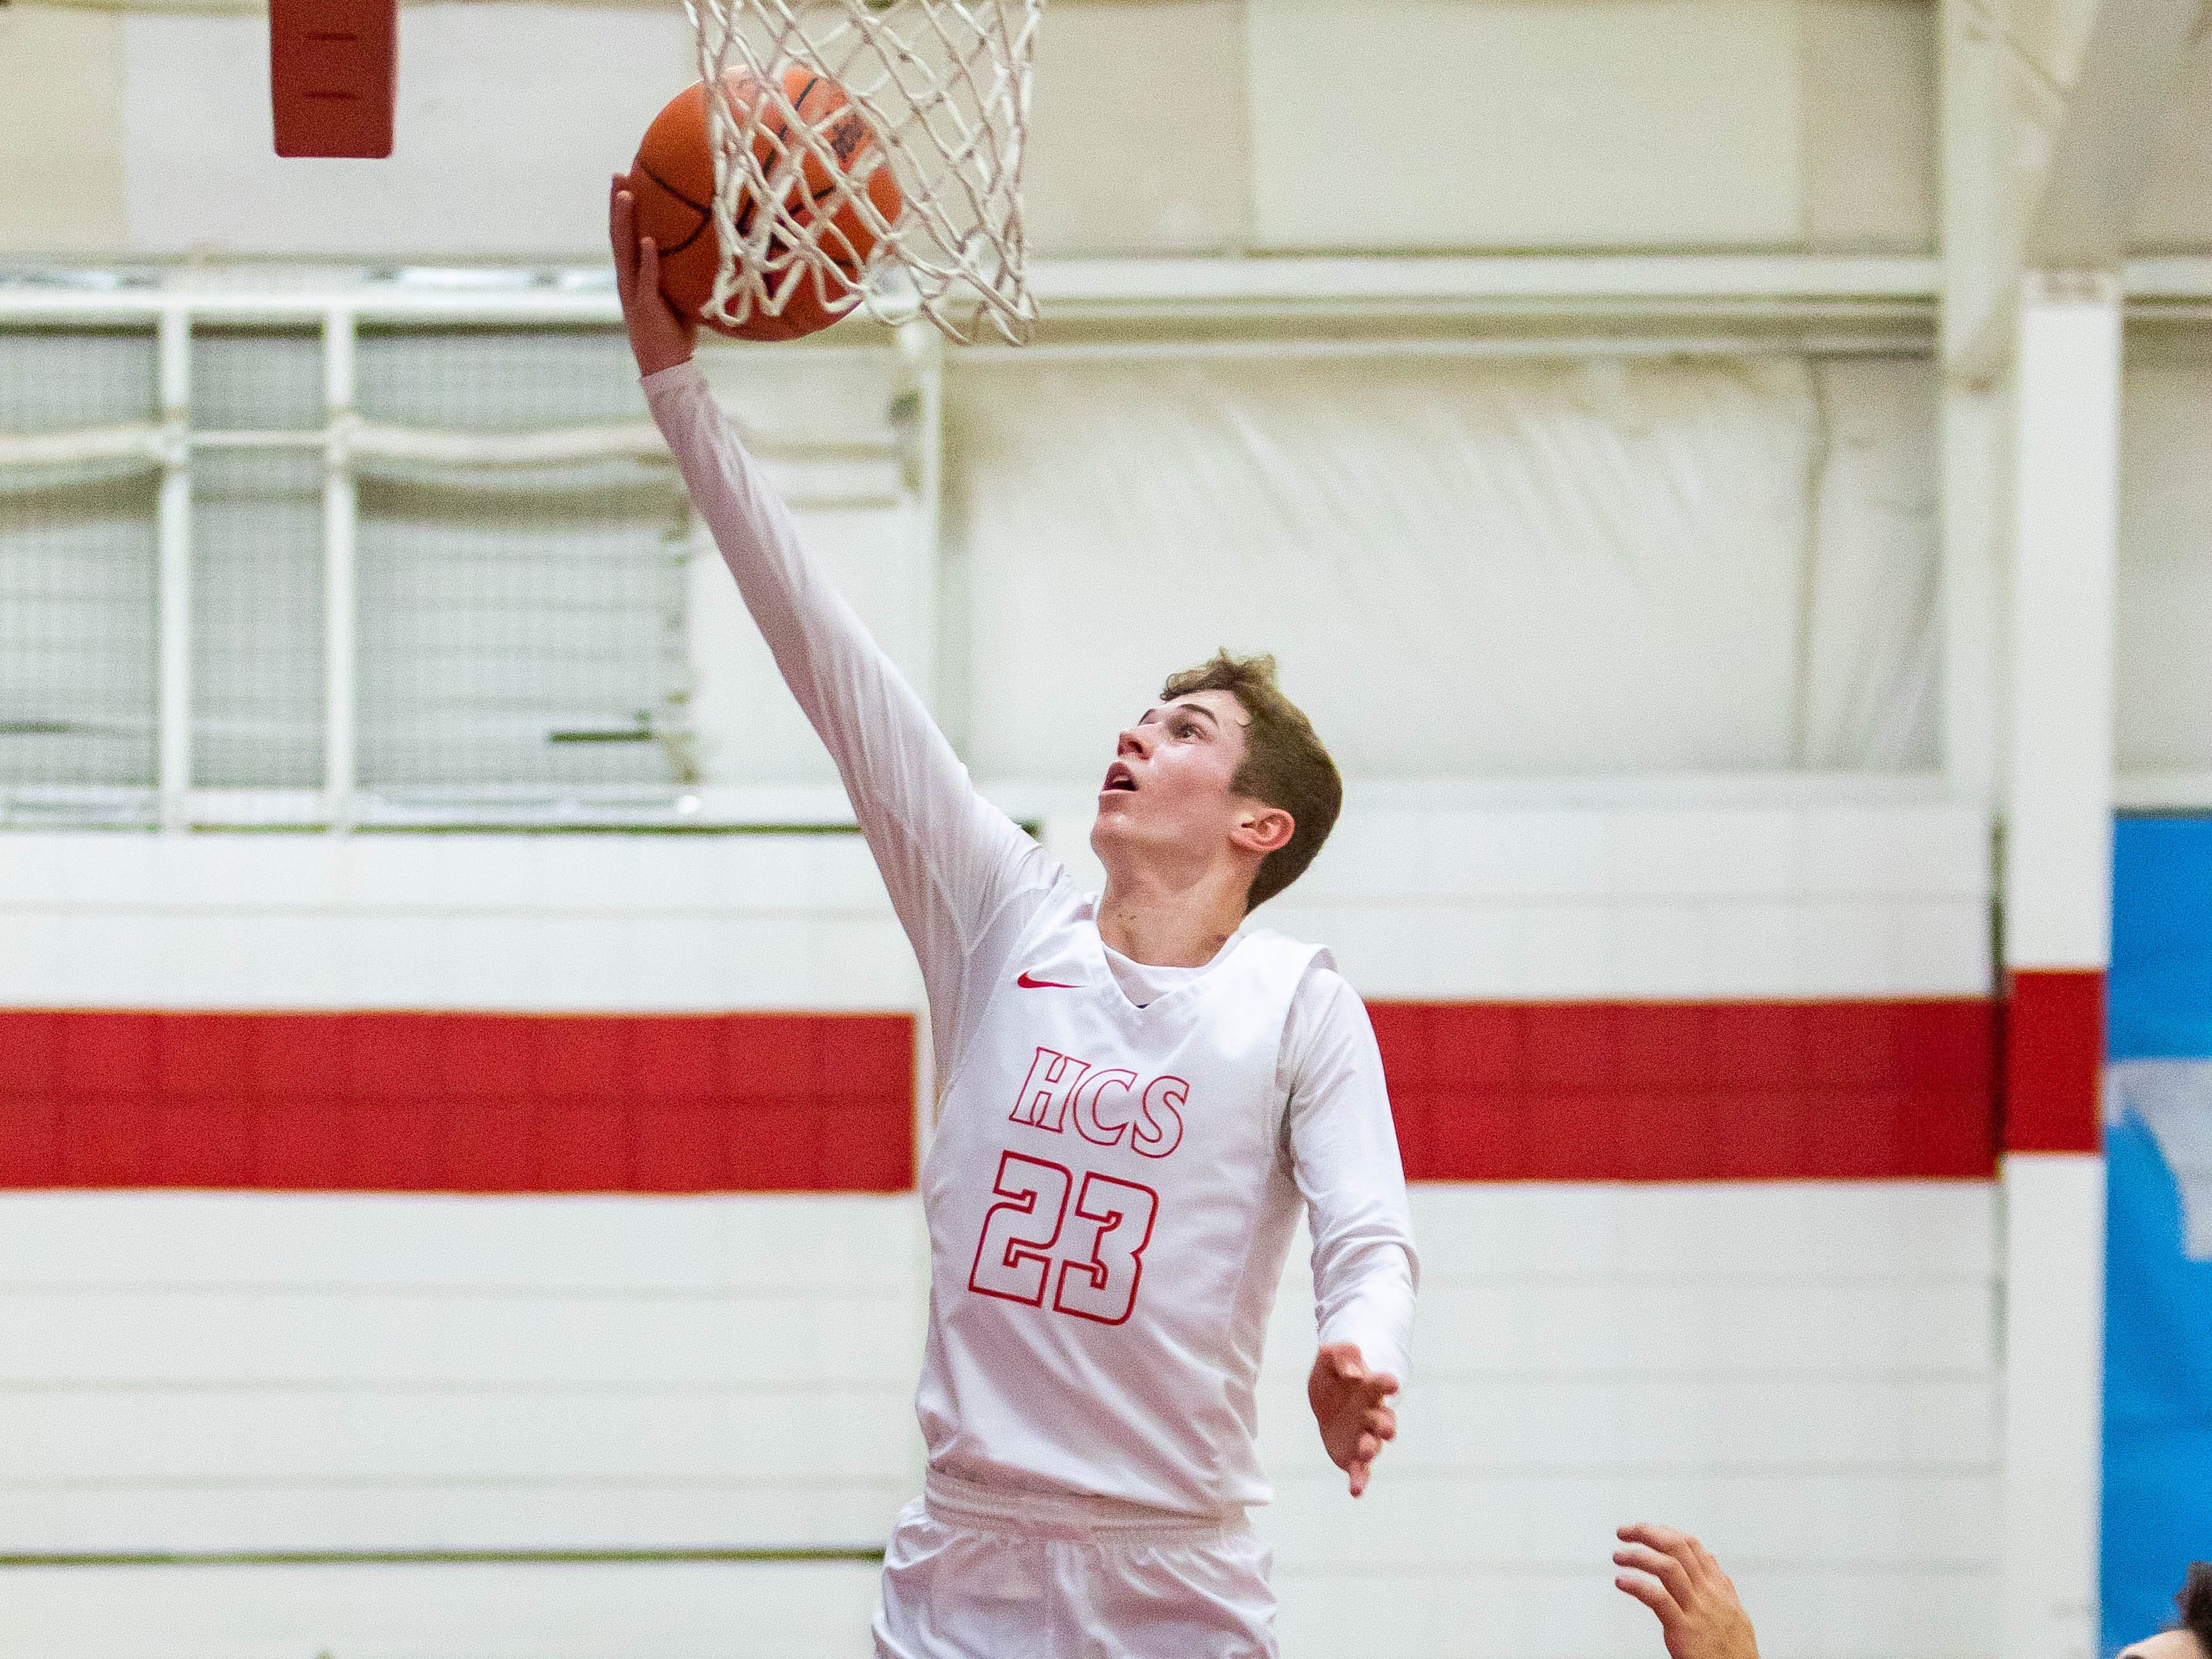 Senior Dylan Jergens has led Marcellus Howardsville Christian to a 19-1 record entering the state playoffs.